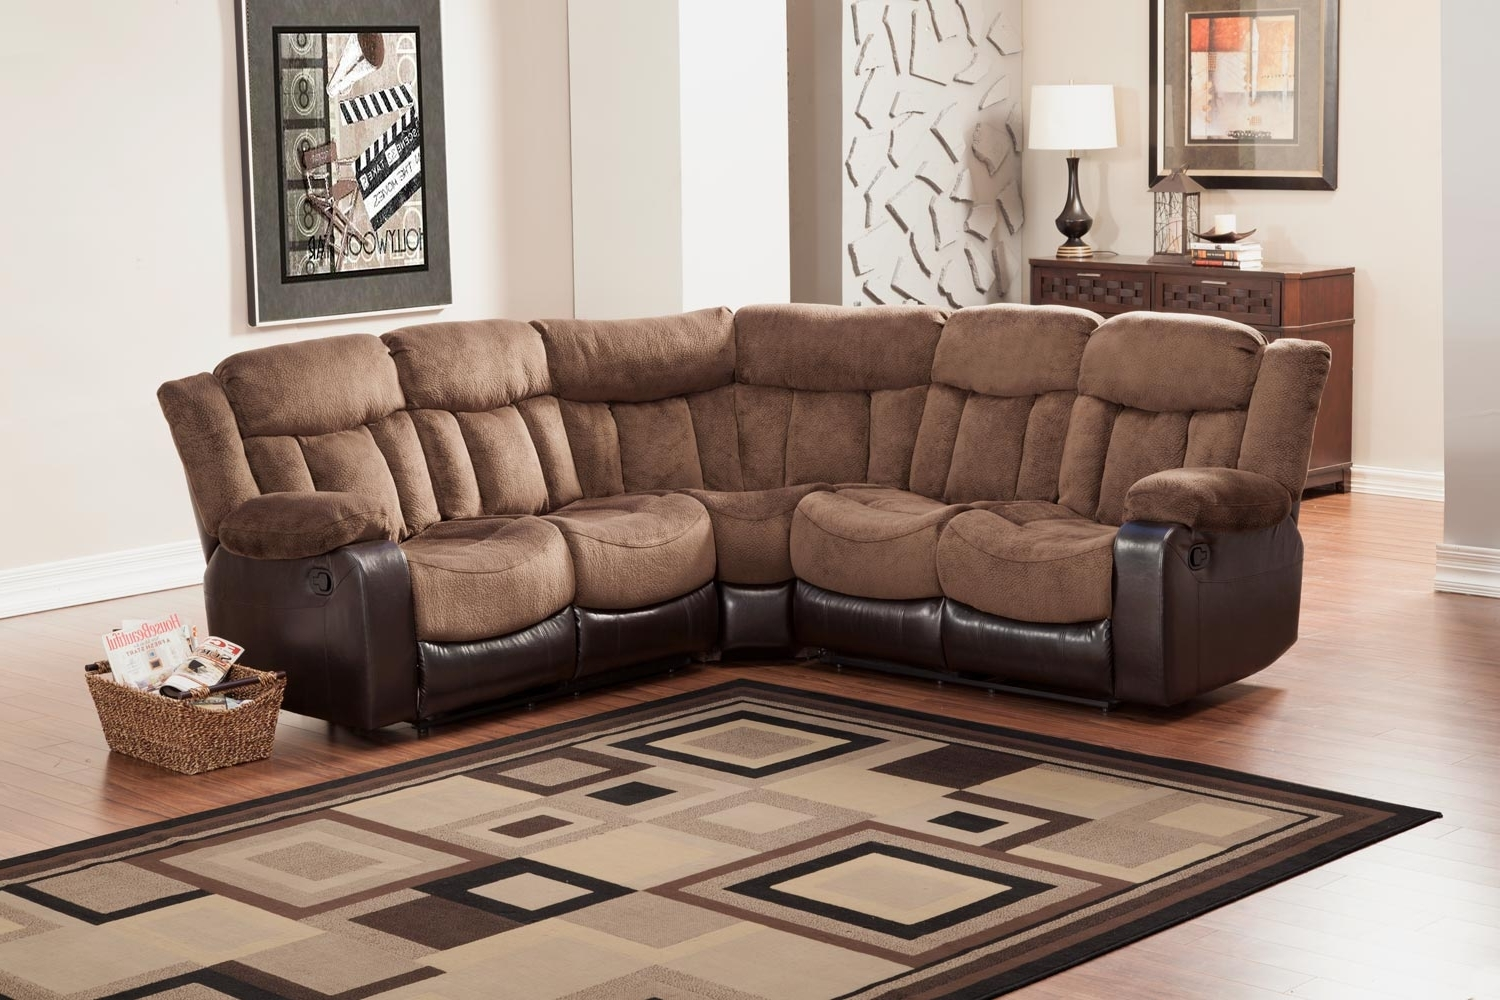 Newest Homelegance Vera Reclining Sectional Sofa – Chocolate – Textured With Regard To Sectional Sofas At Edmonton (View 10 of 20)